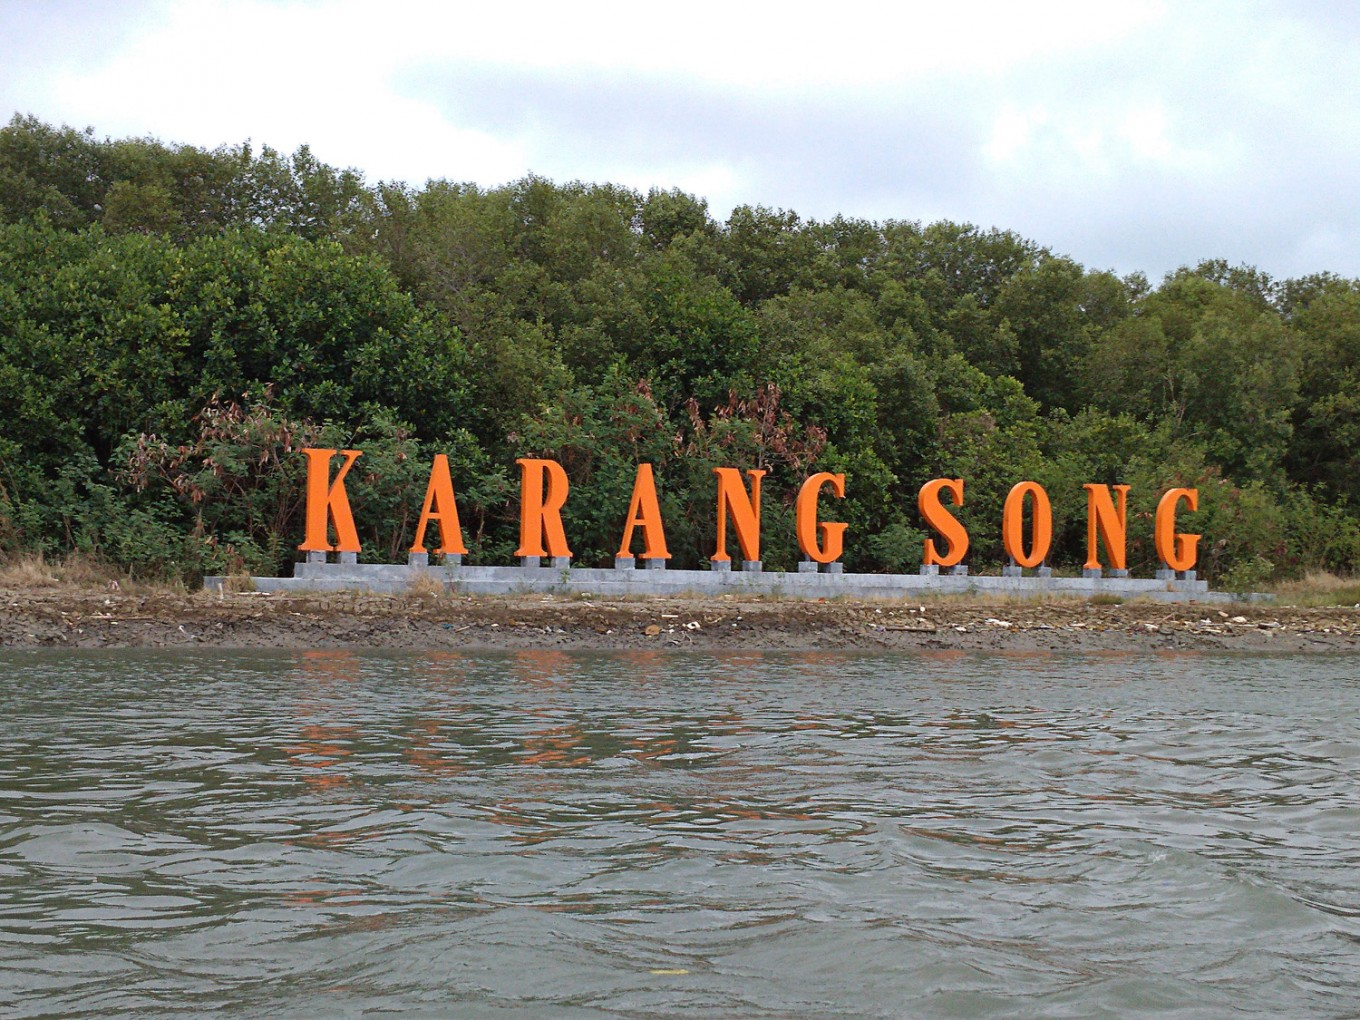 Karangsong named a mangrove research center